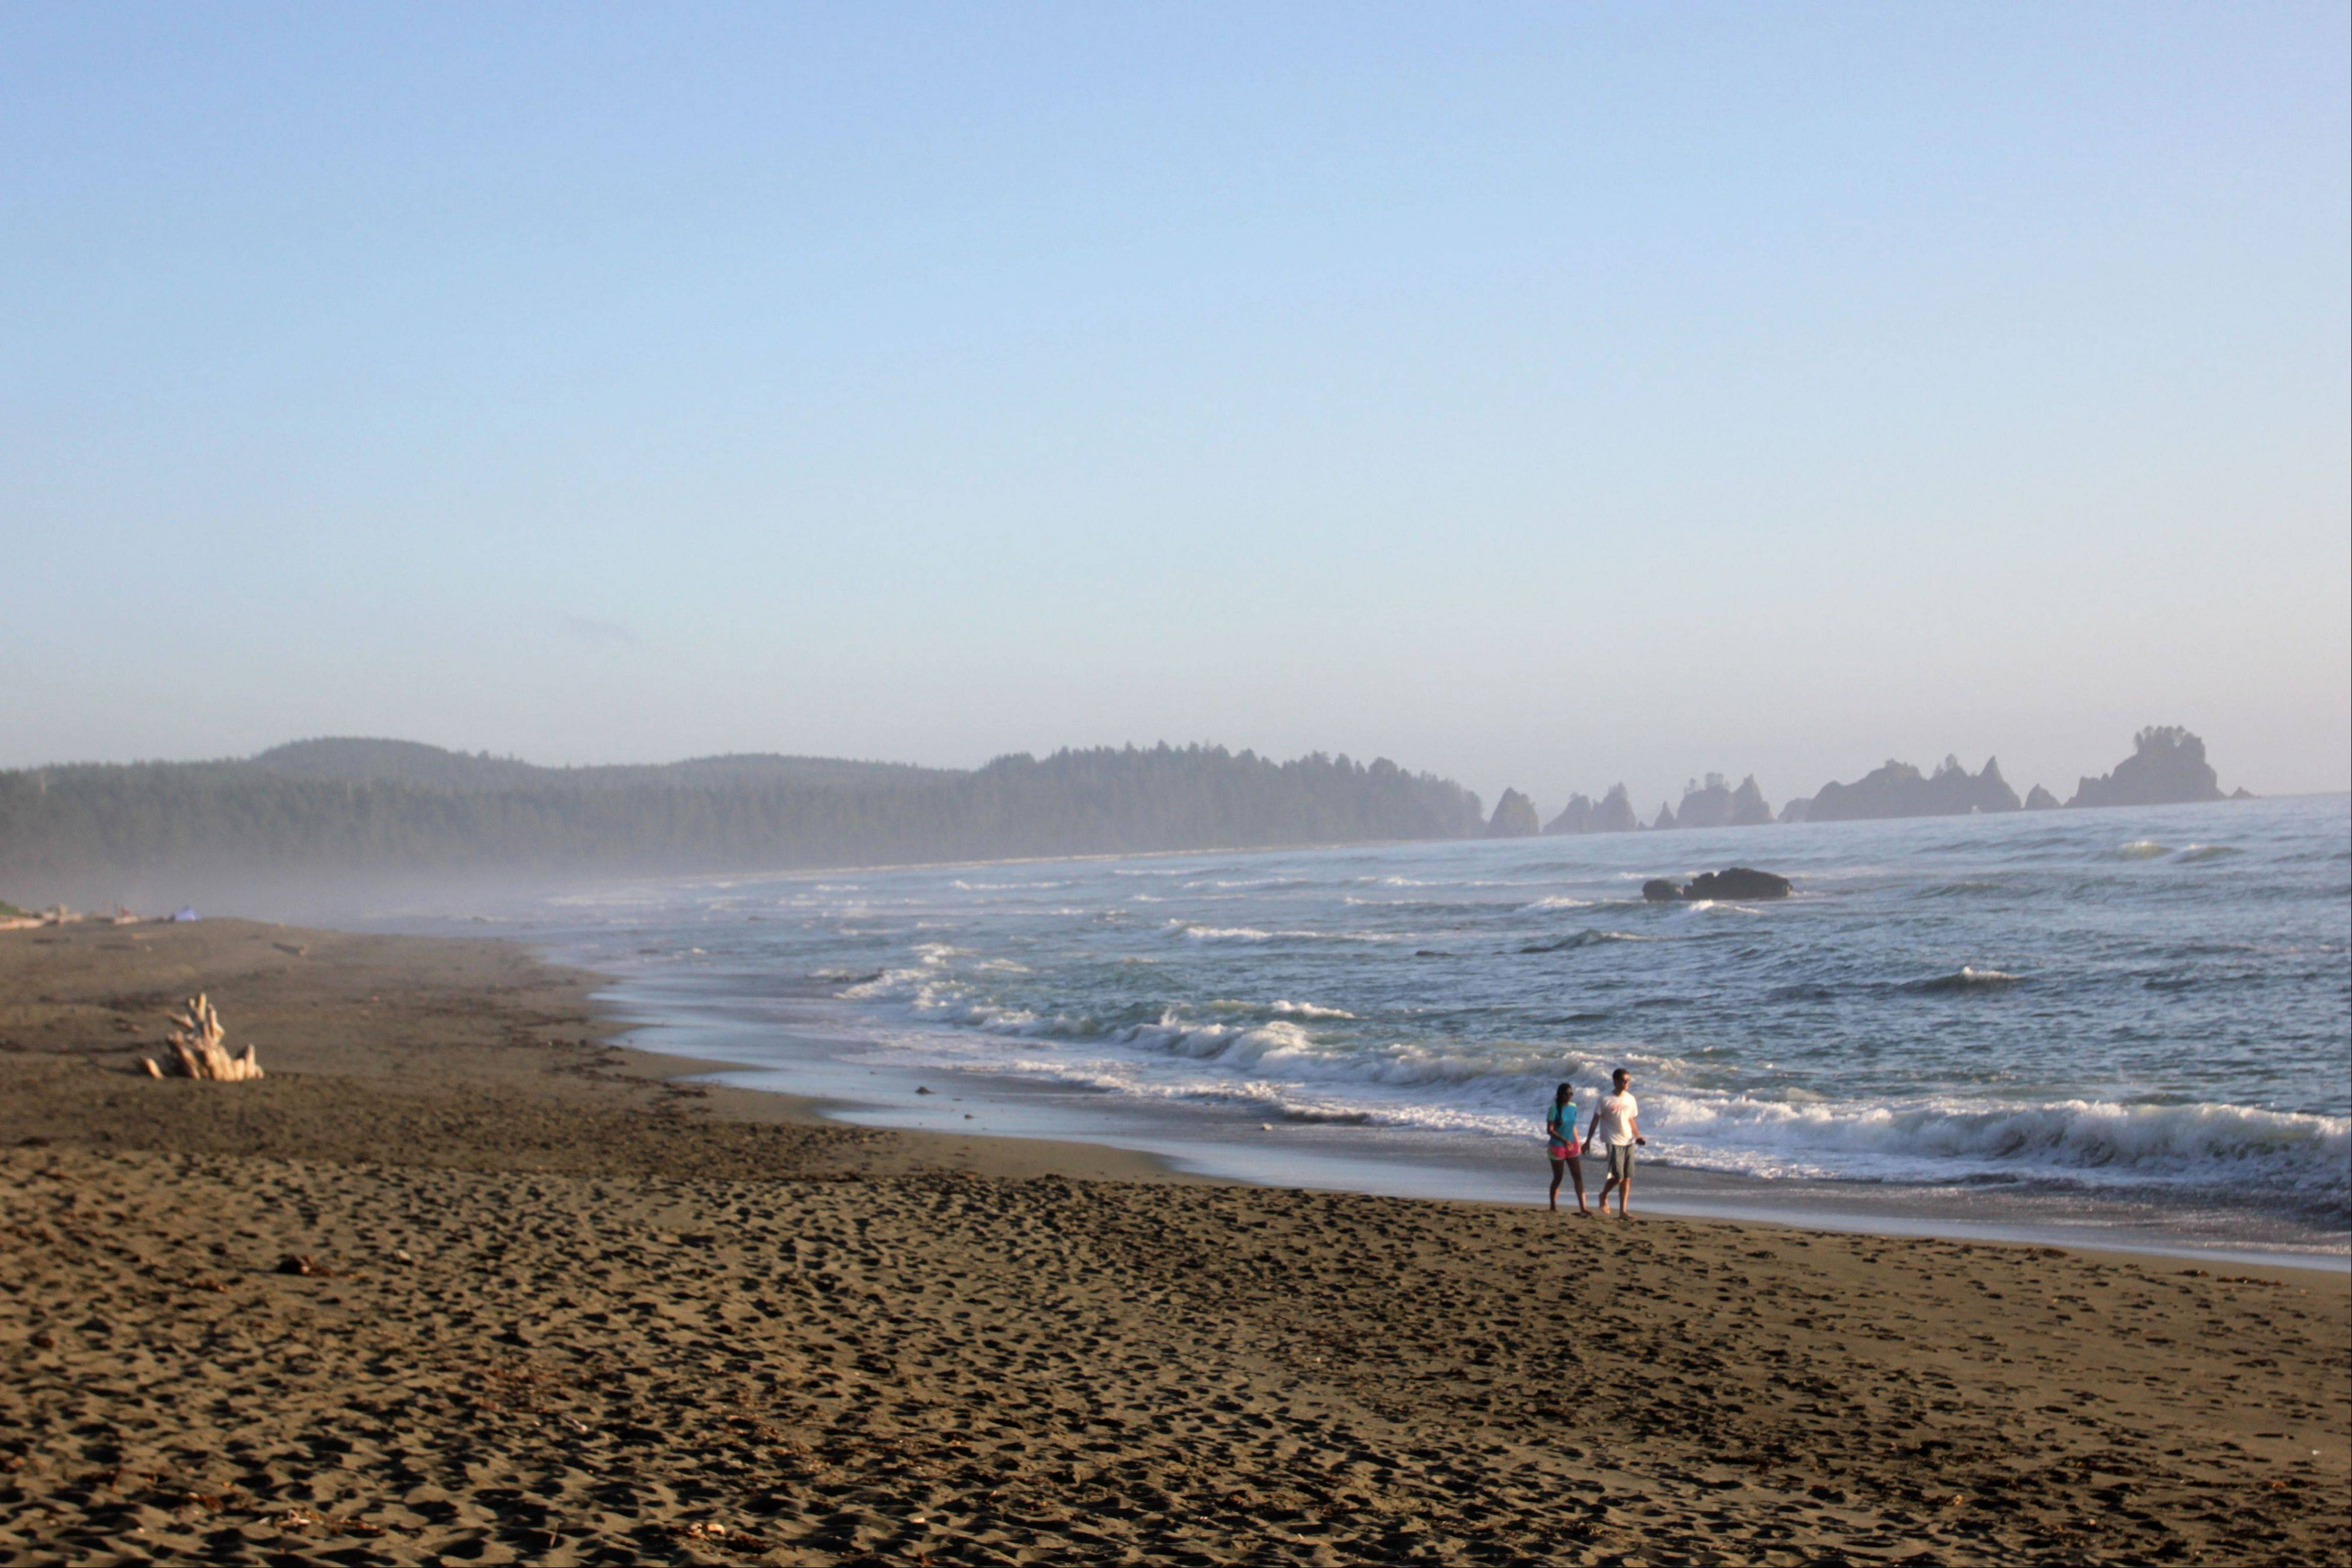 A couple walks down Shi Shi Beach in Washington state's Olympic National Park. One of the most pristine beaches in the state, Shi Shi provides blissful disconnect to hikers and campers at the beach.